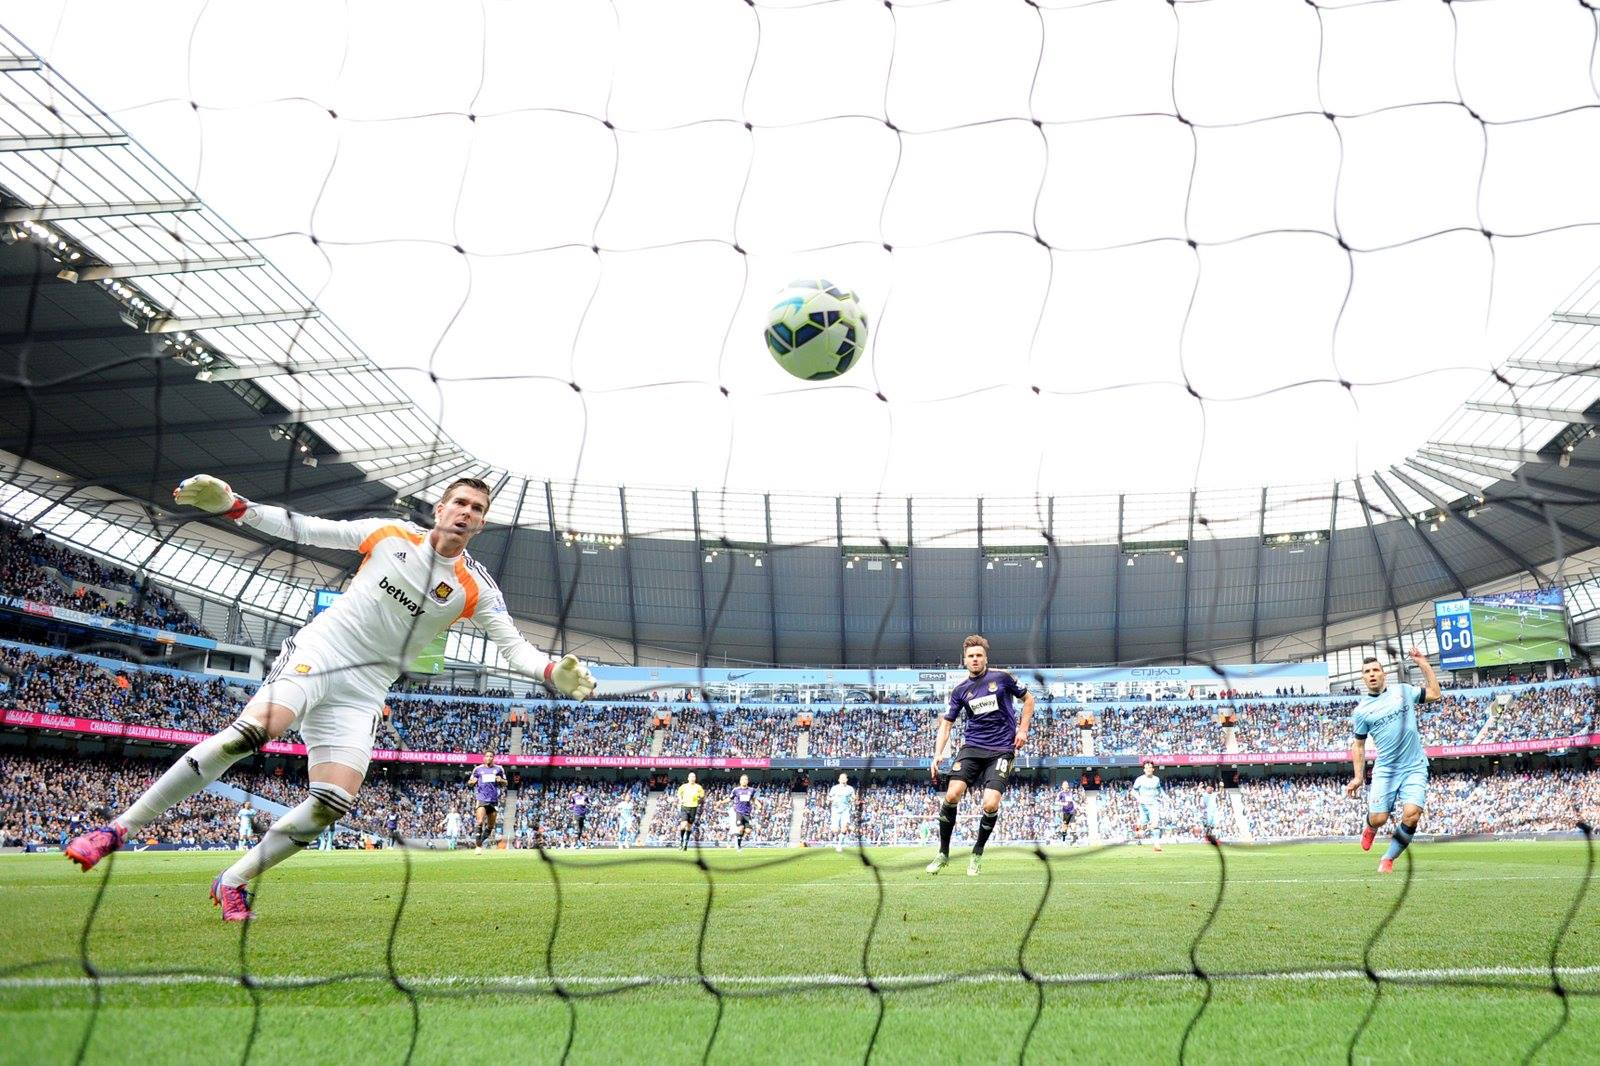 Received with thanks - West Ham's James Collins scored a cracking own goal for City. Courtesy@MCFC